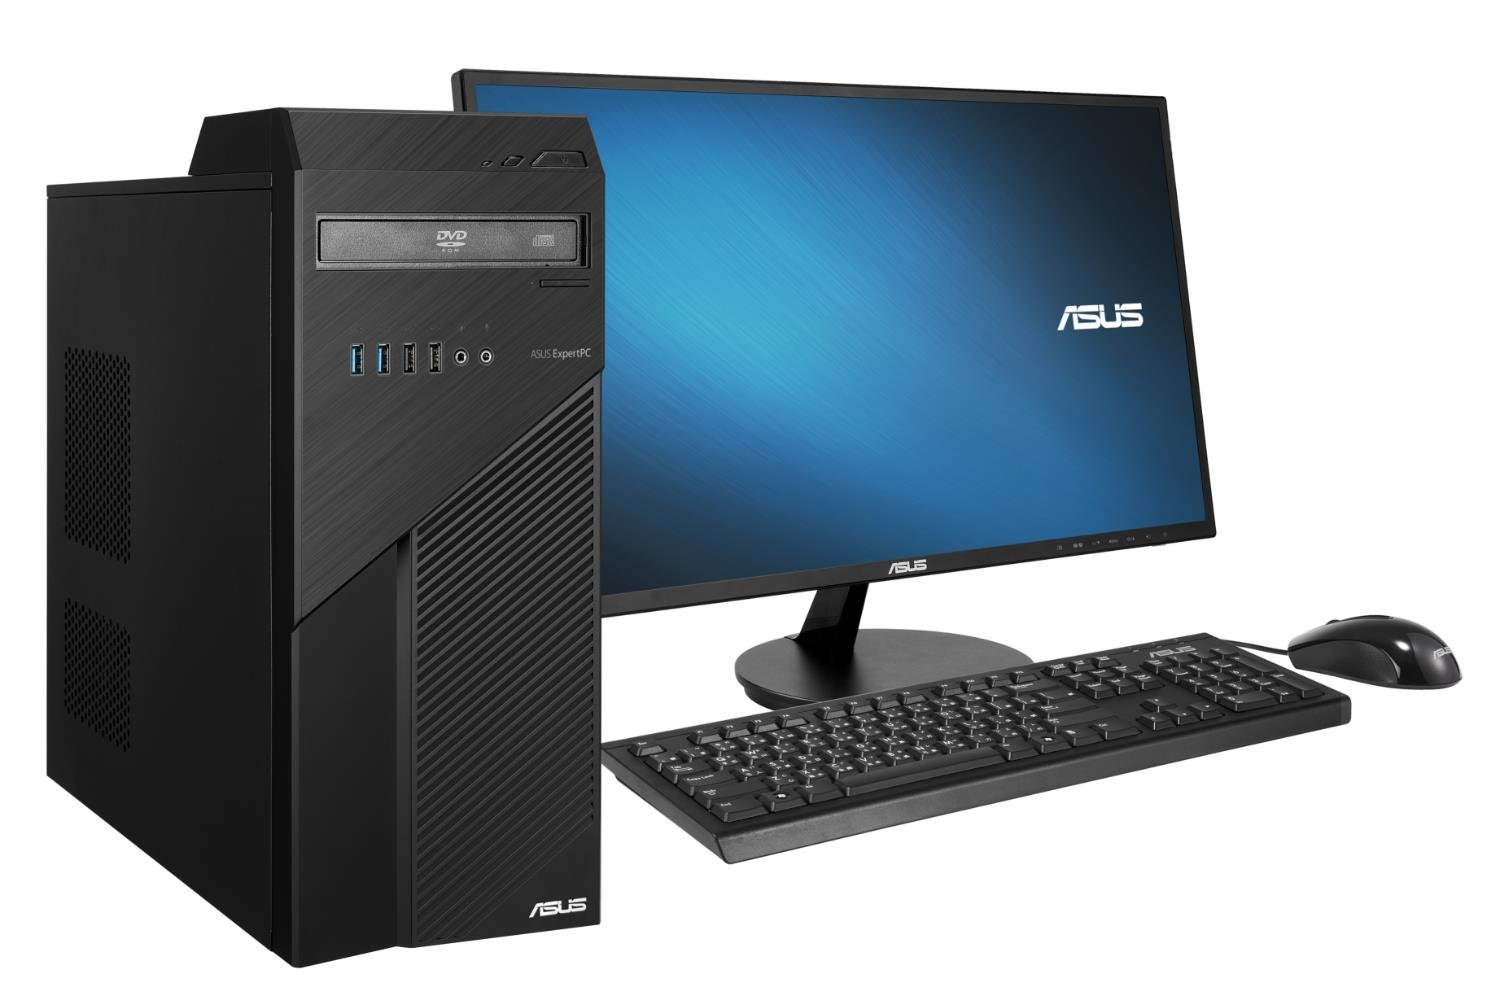 ASUS BUSINESS ExpertPC D5 Mini Tower D540MA inceleme